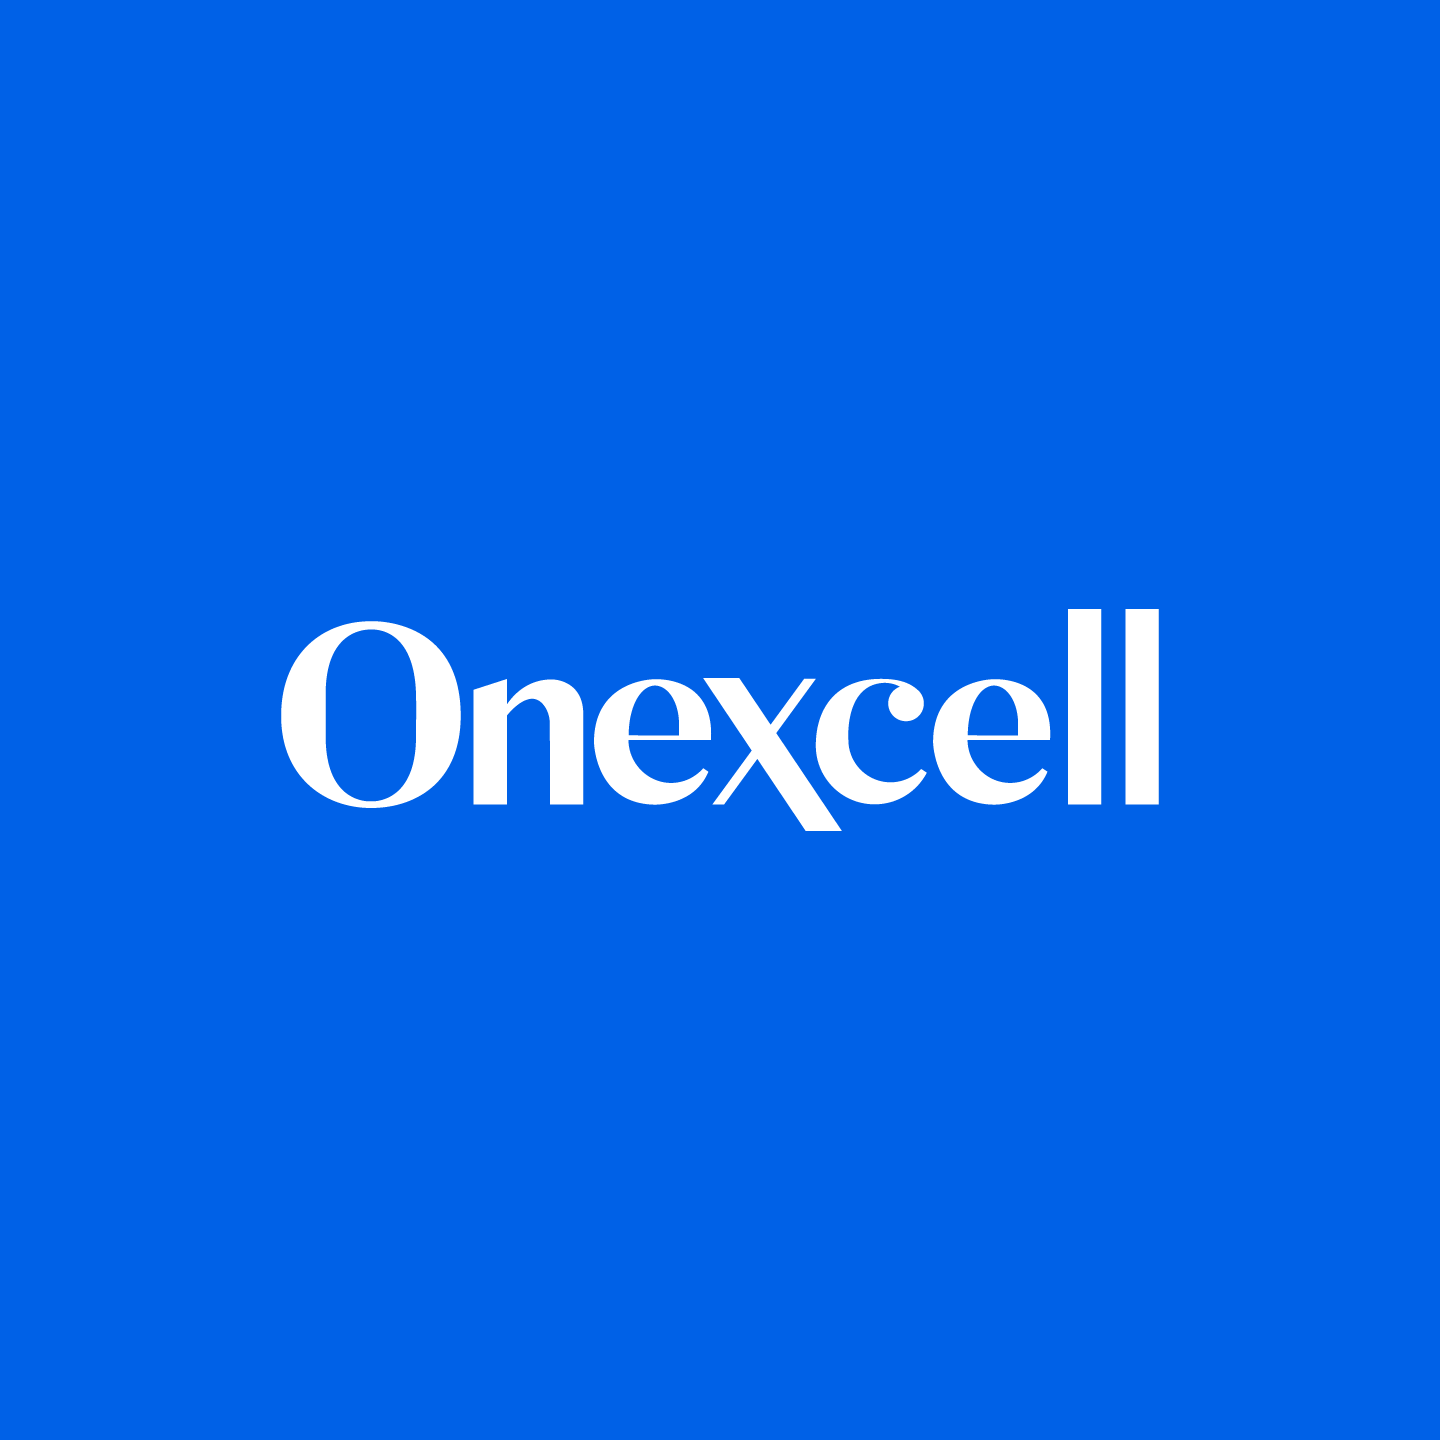 Onexcell Logo